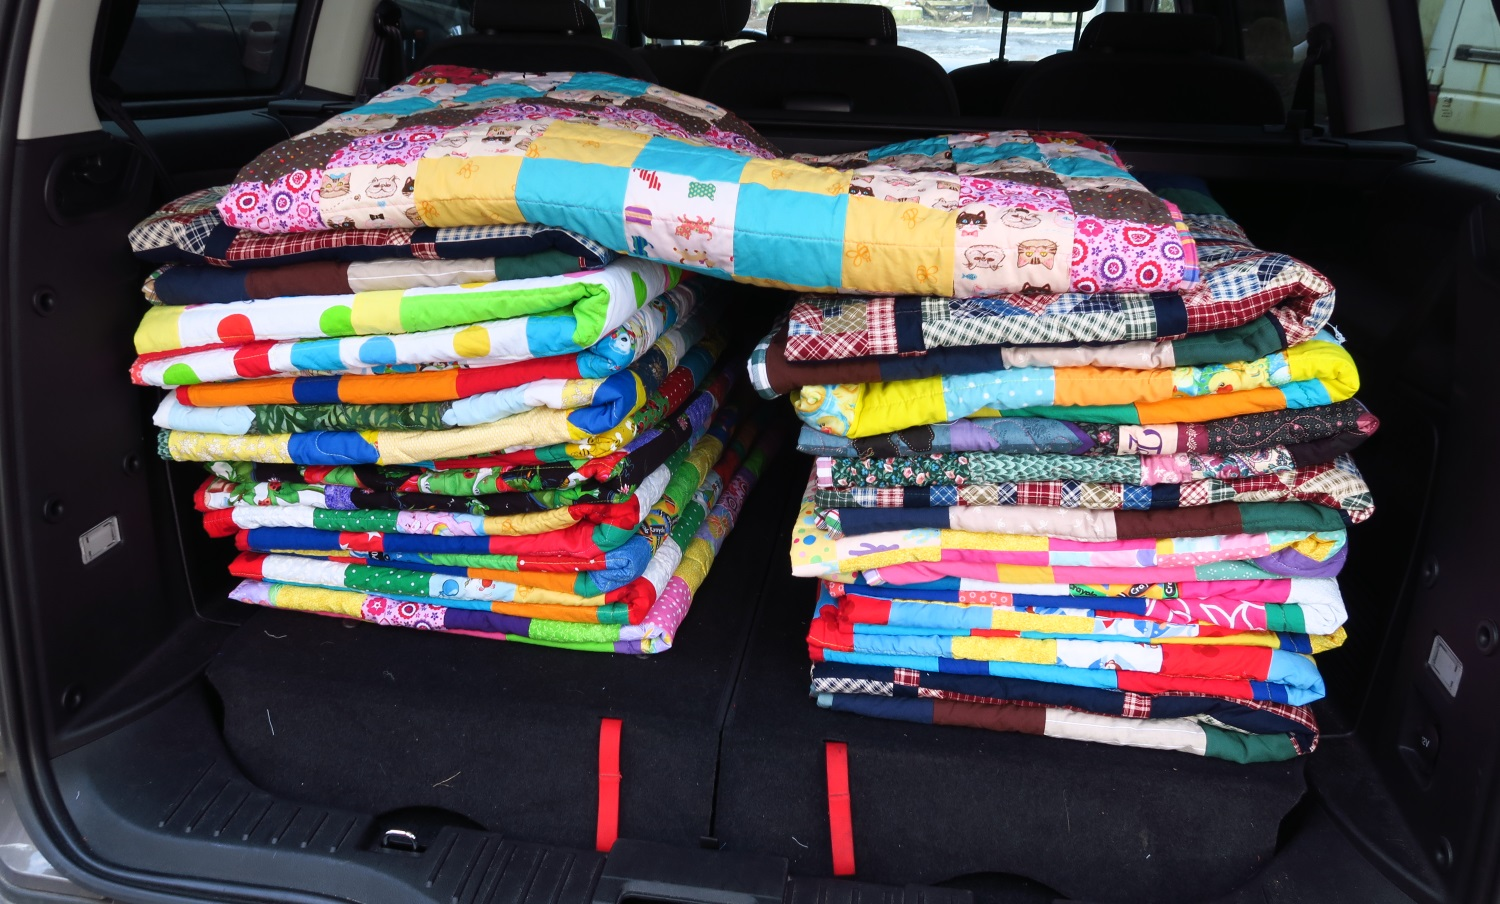 """Here are the last 20 quilts in the back of the """"new to us"""" minivan we got earlier this year."""